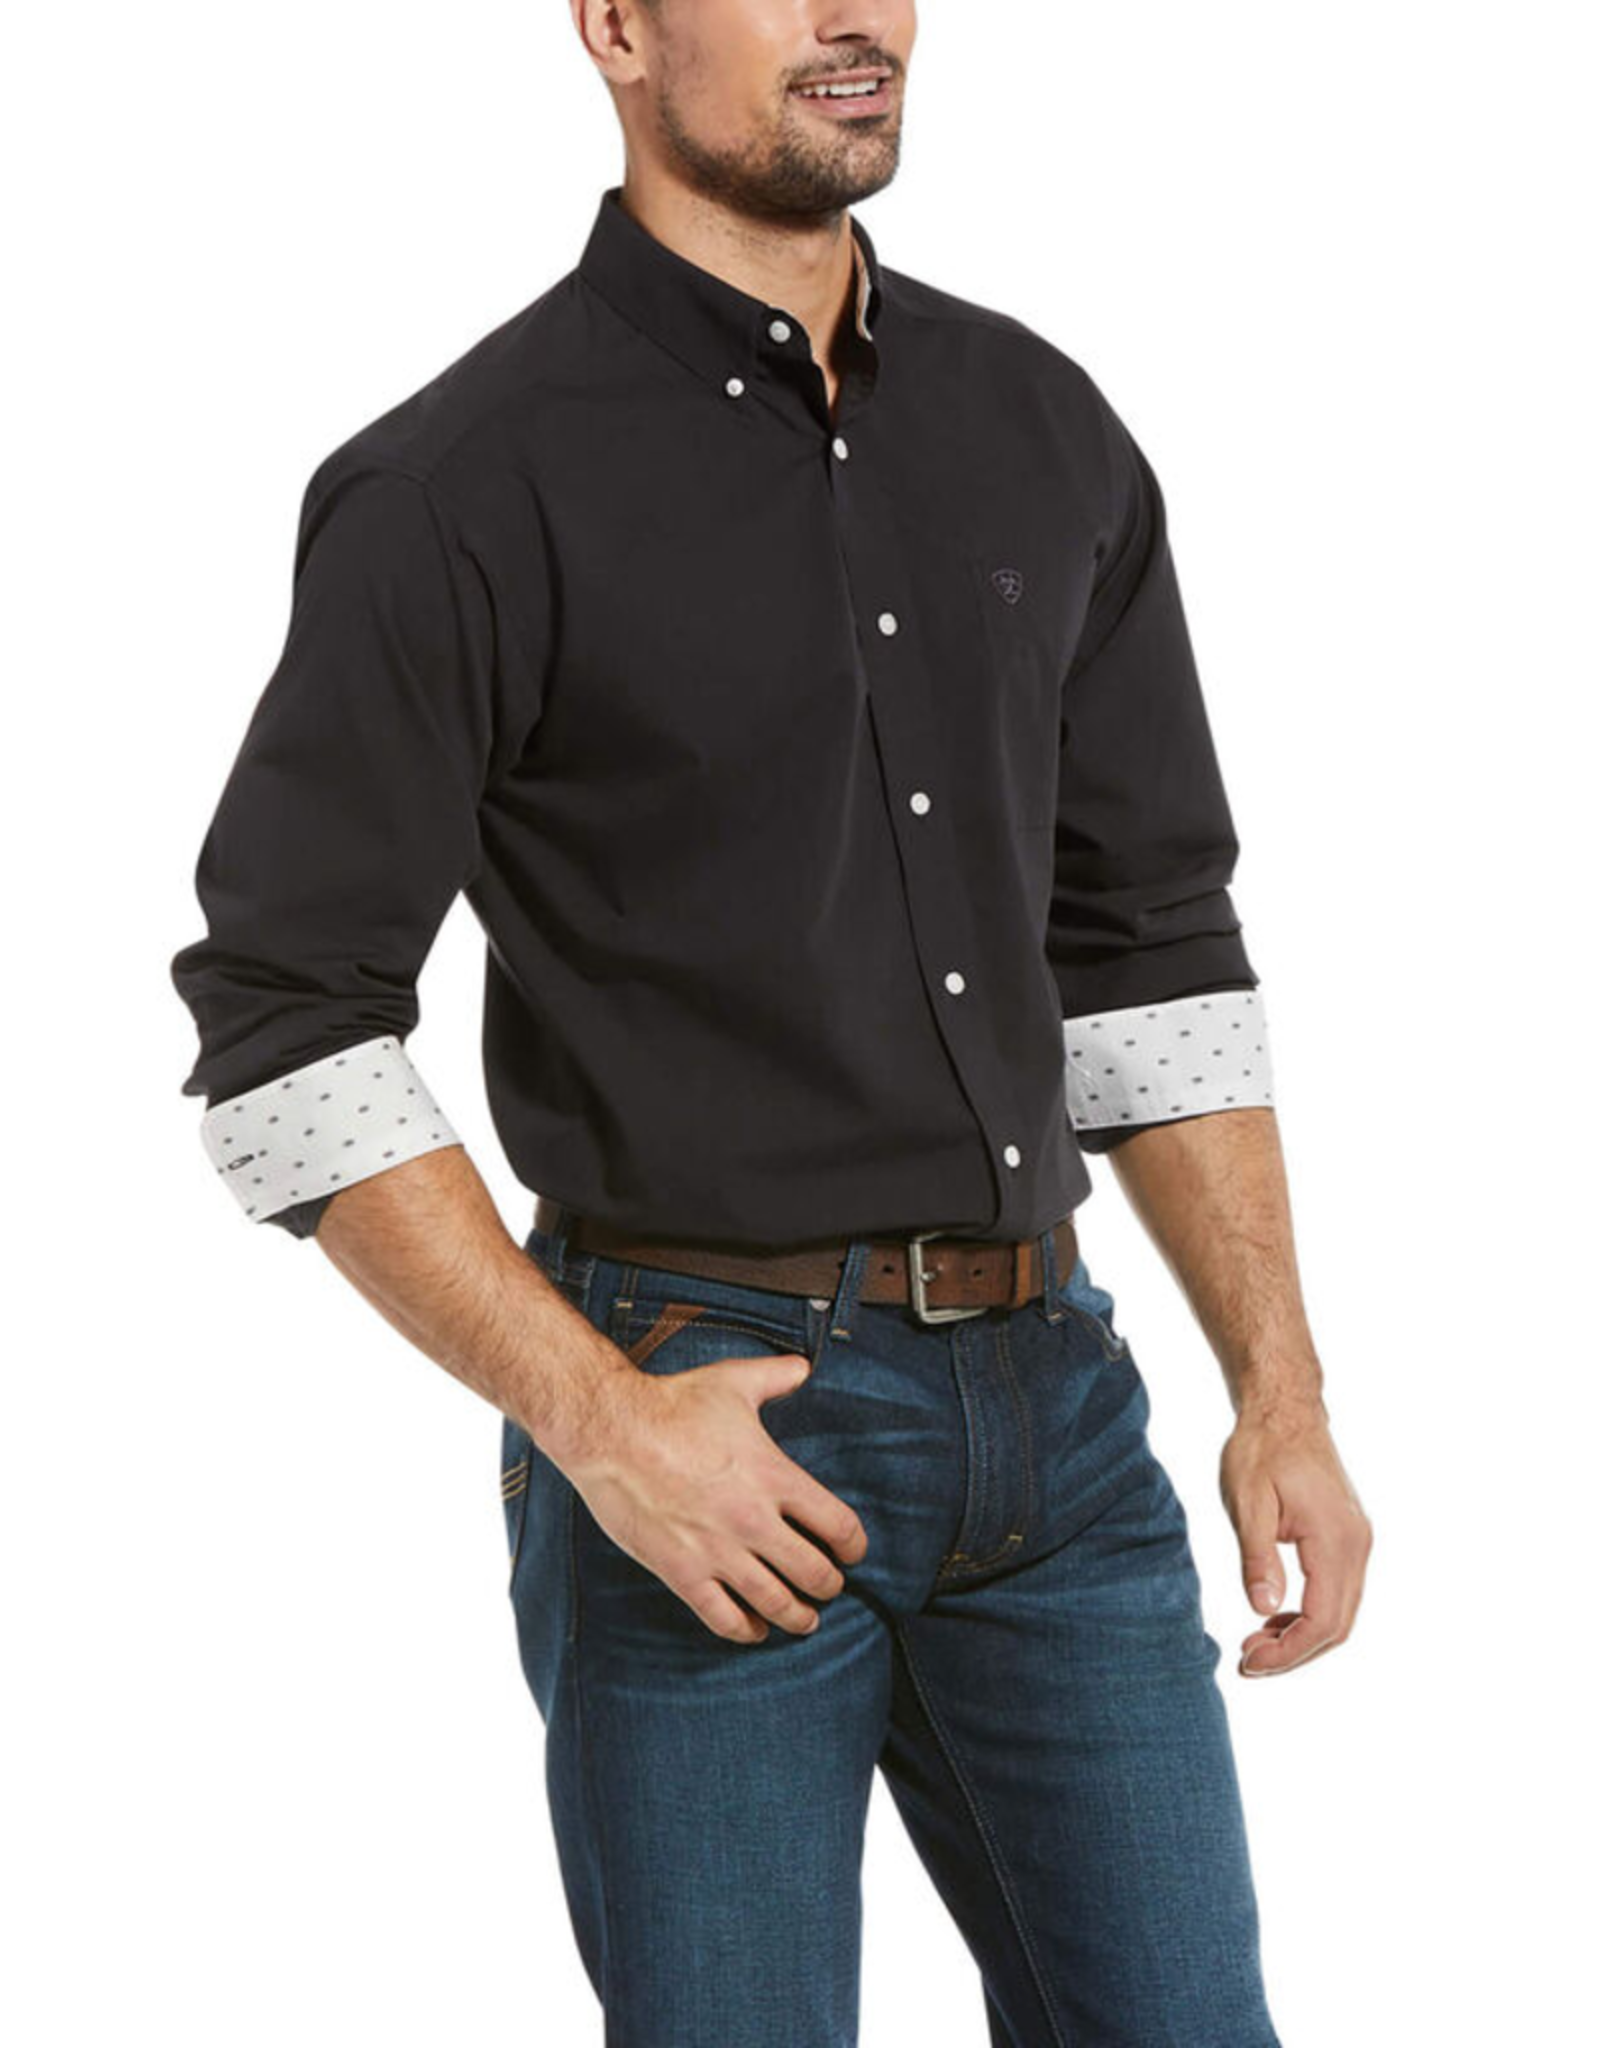 Ariat Ariat Wrinkle Free Solid Oxford Classic Shirt